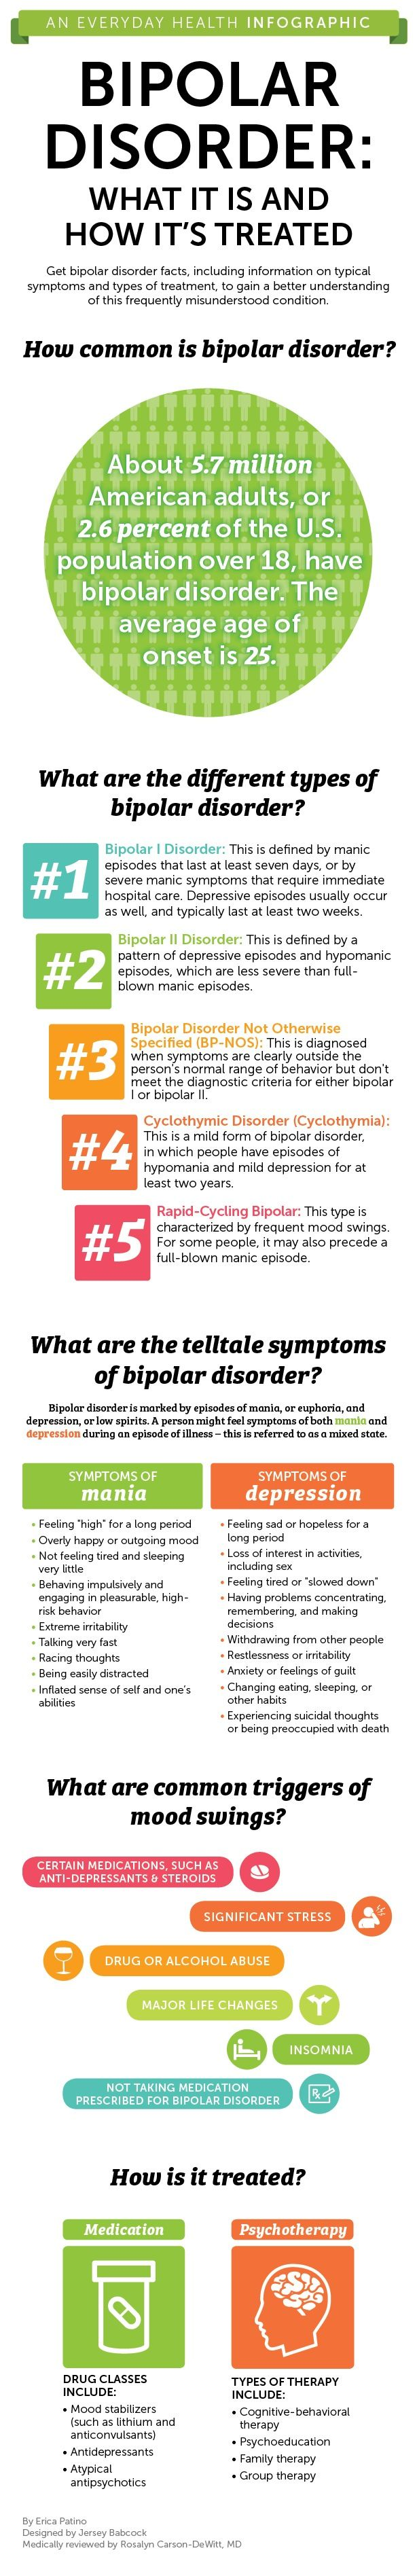 Bipolar Disorder - What It Is and How It's Treated: Infographic - Living With Bipolar Disorder - Everyday Health